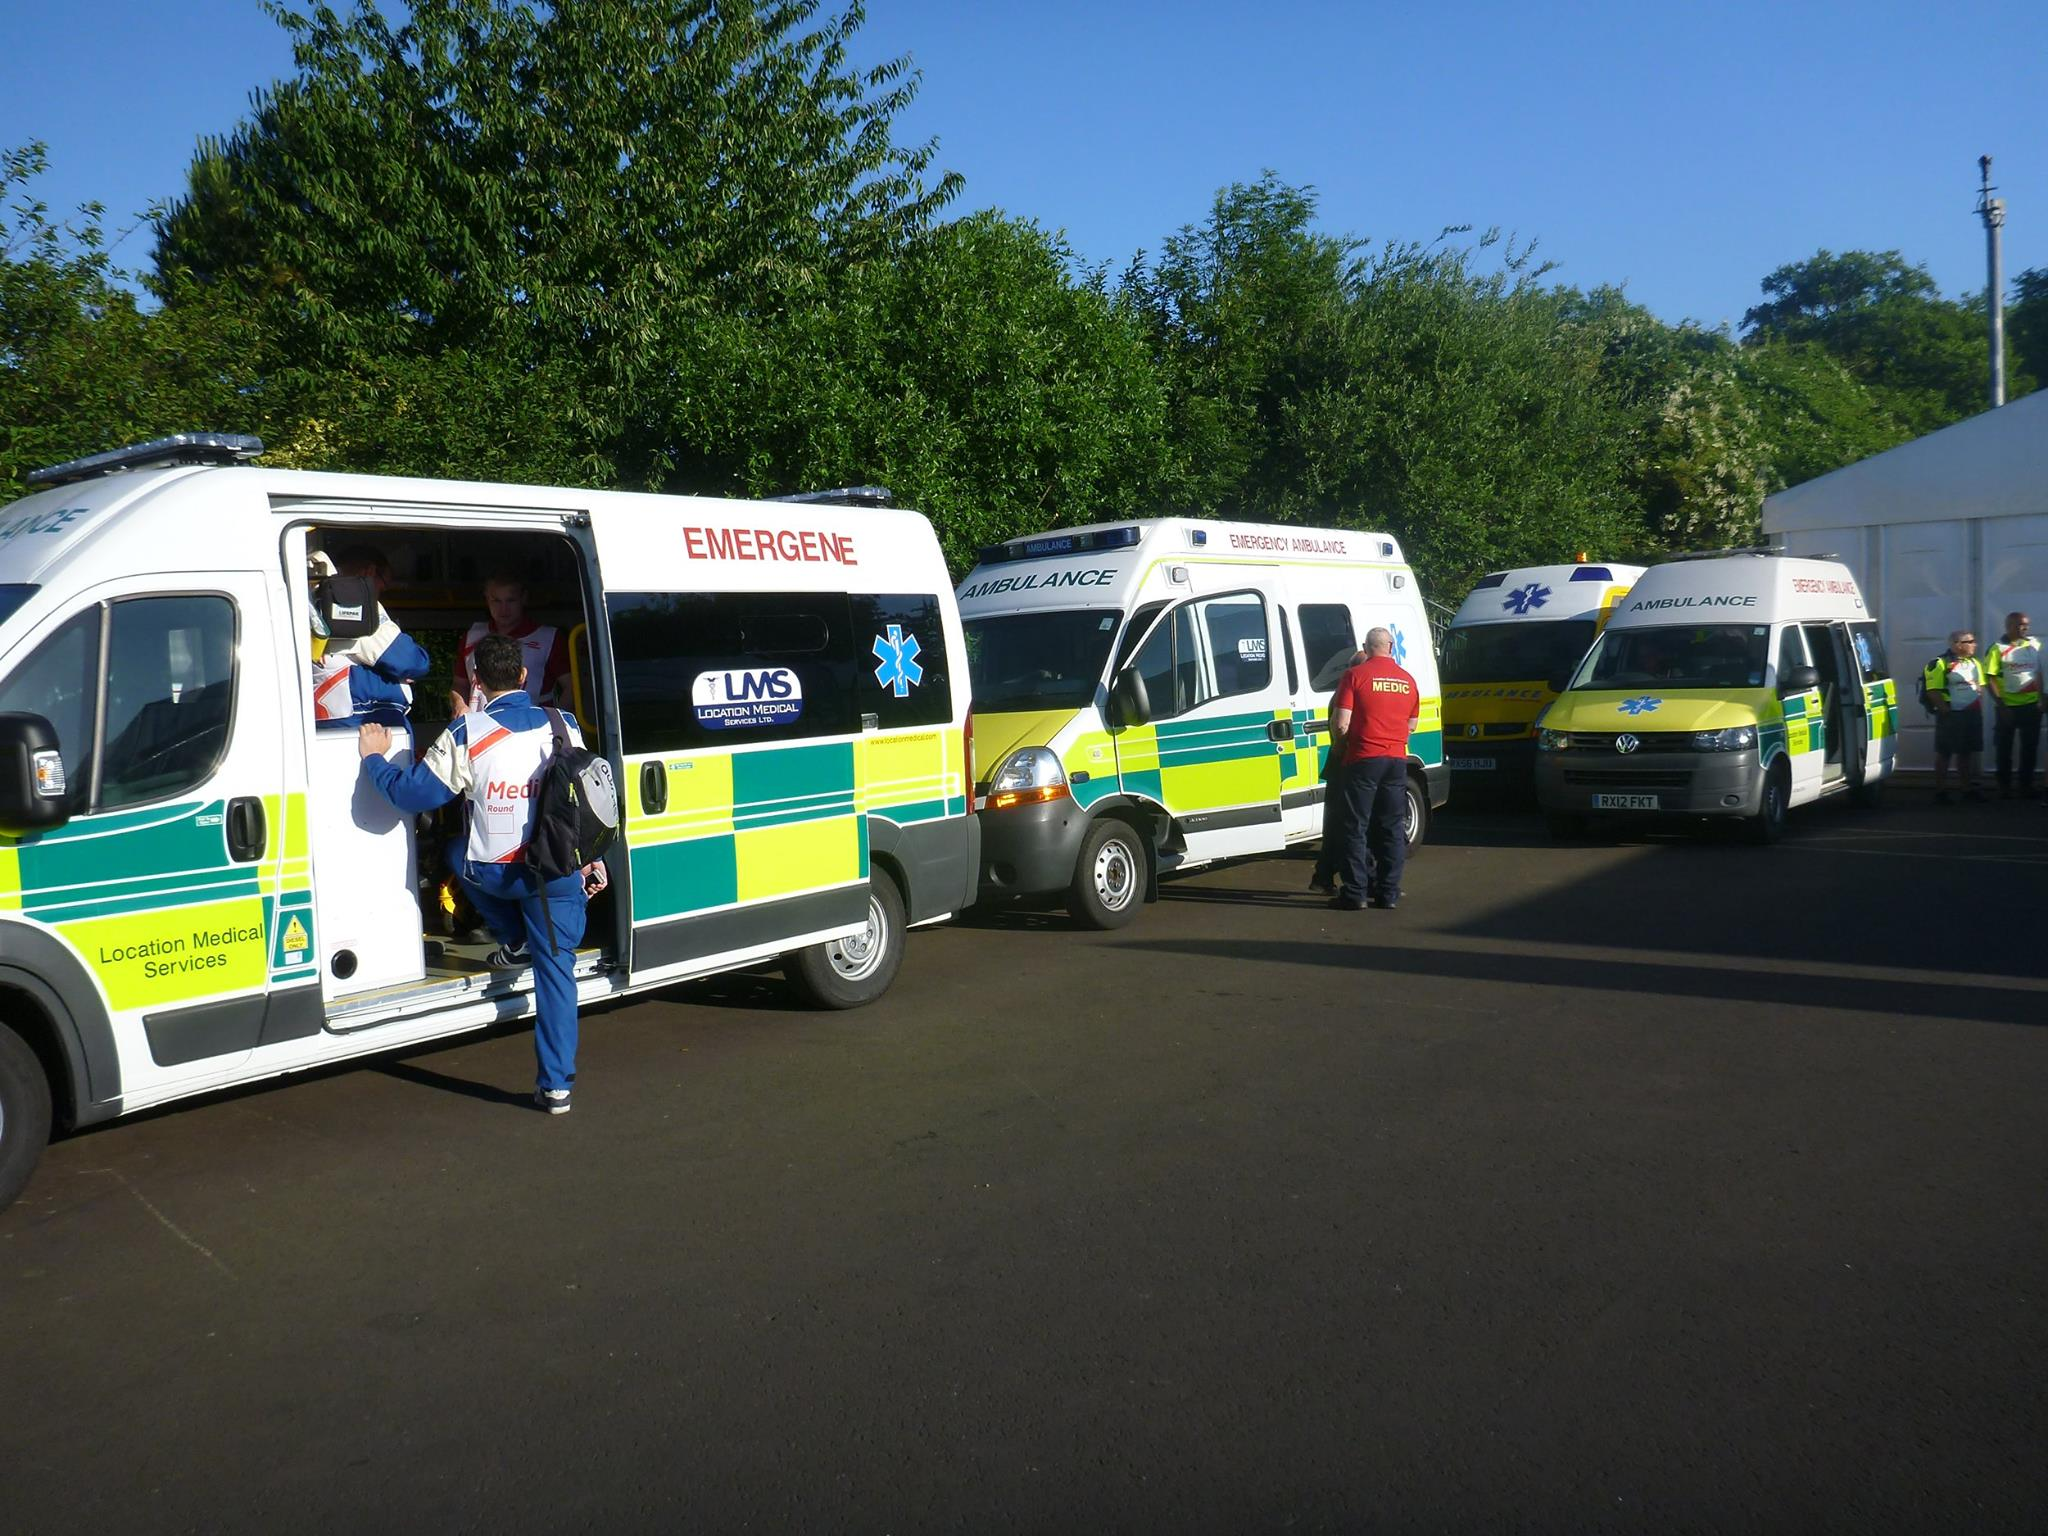 Motorsport Medics - Fleet of LMS Ambulances covering the event